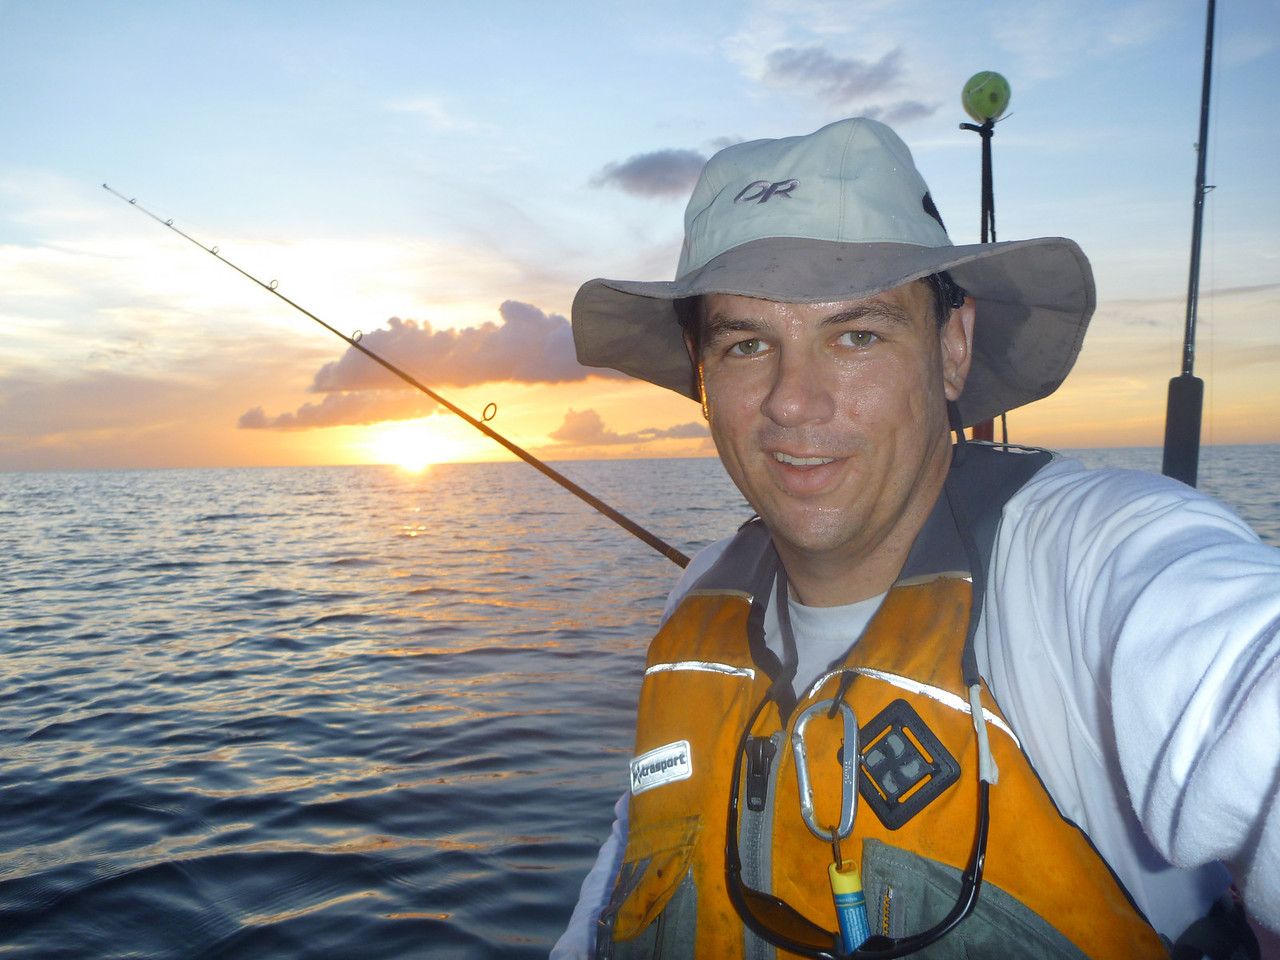 June 5, 2010. Sunset as seen while kayak fishing Grenada. It always looks nicer when you have a tuna in the cooler bag!